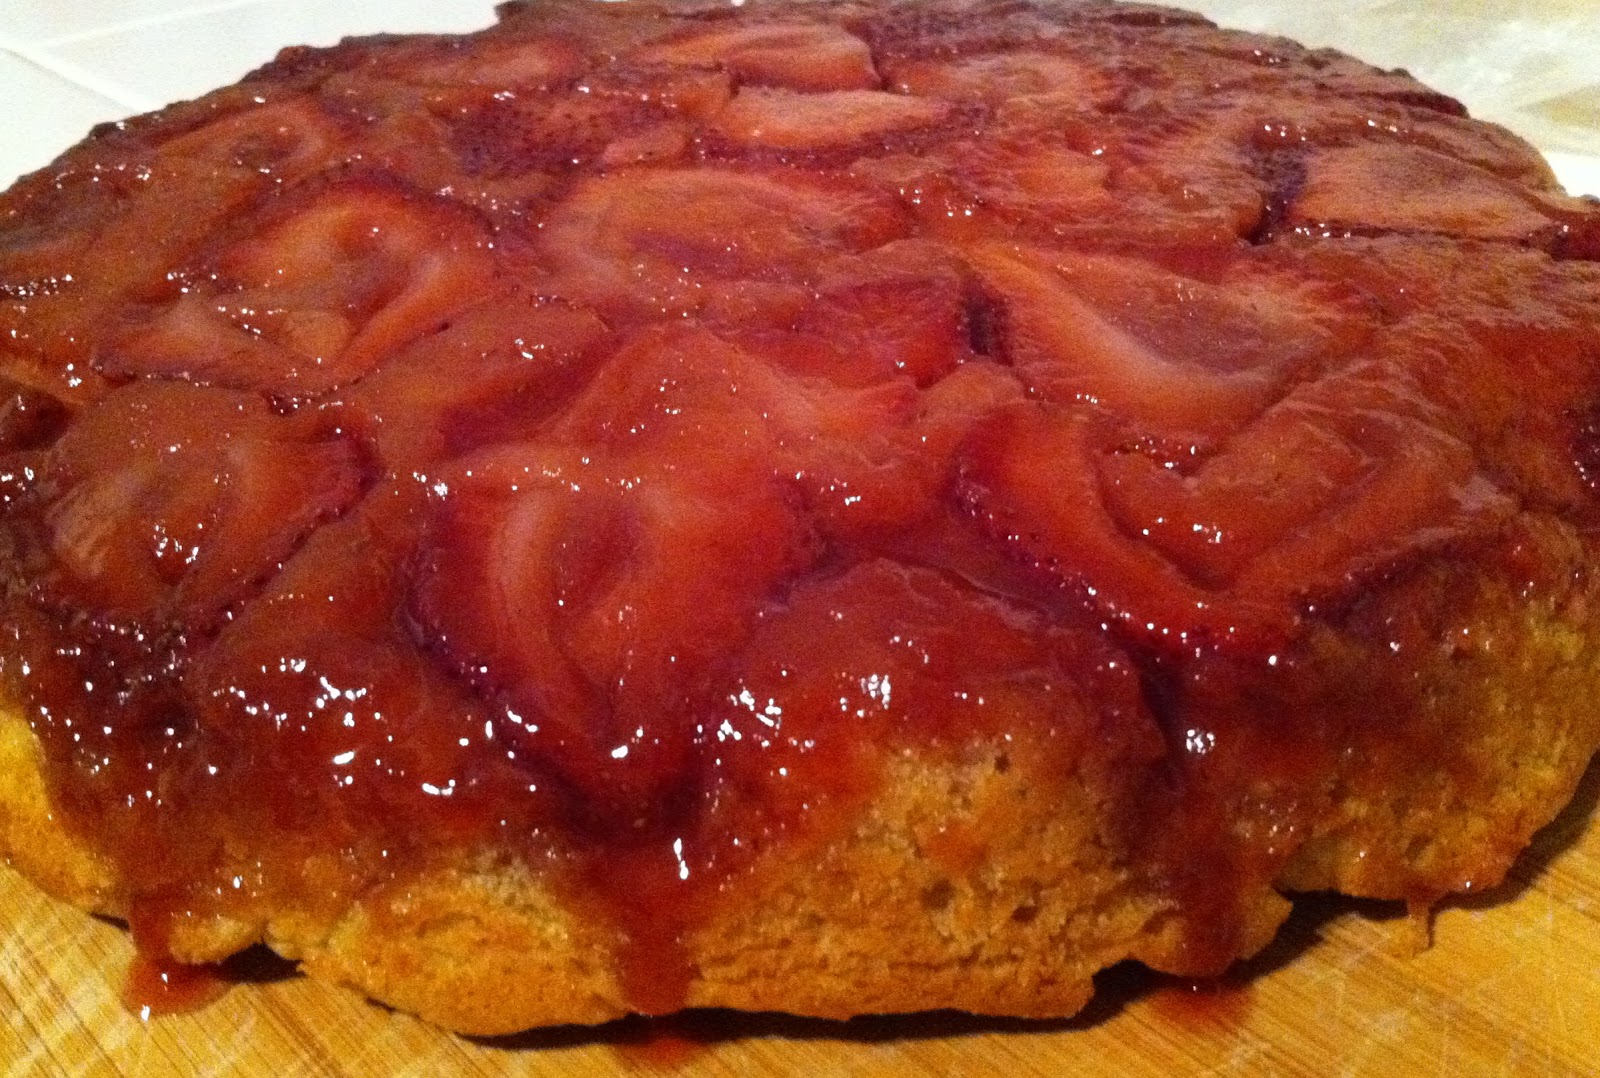 ... doughnut upside down cake strawberry upside down cake with cardamom